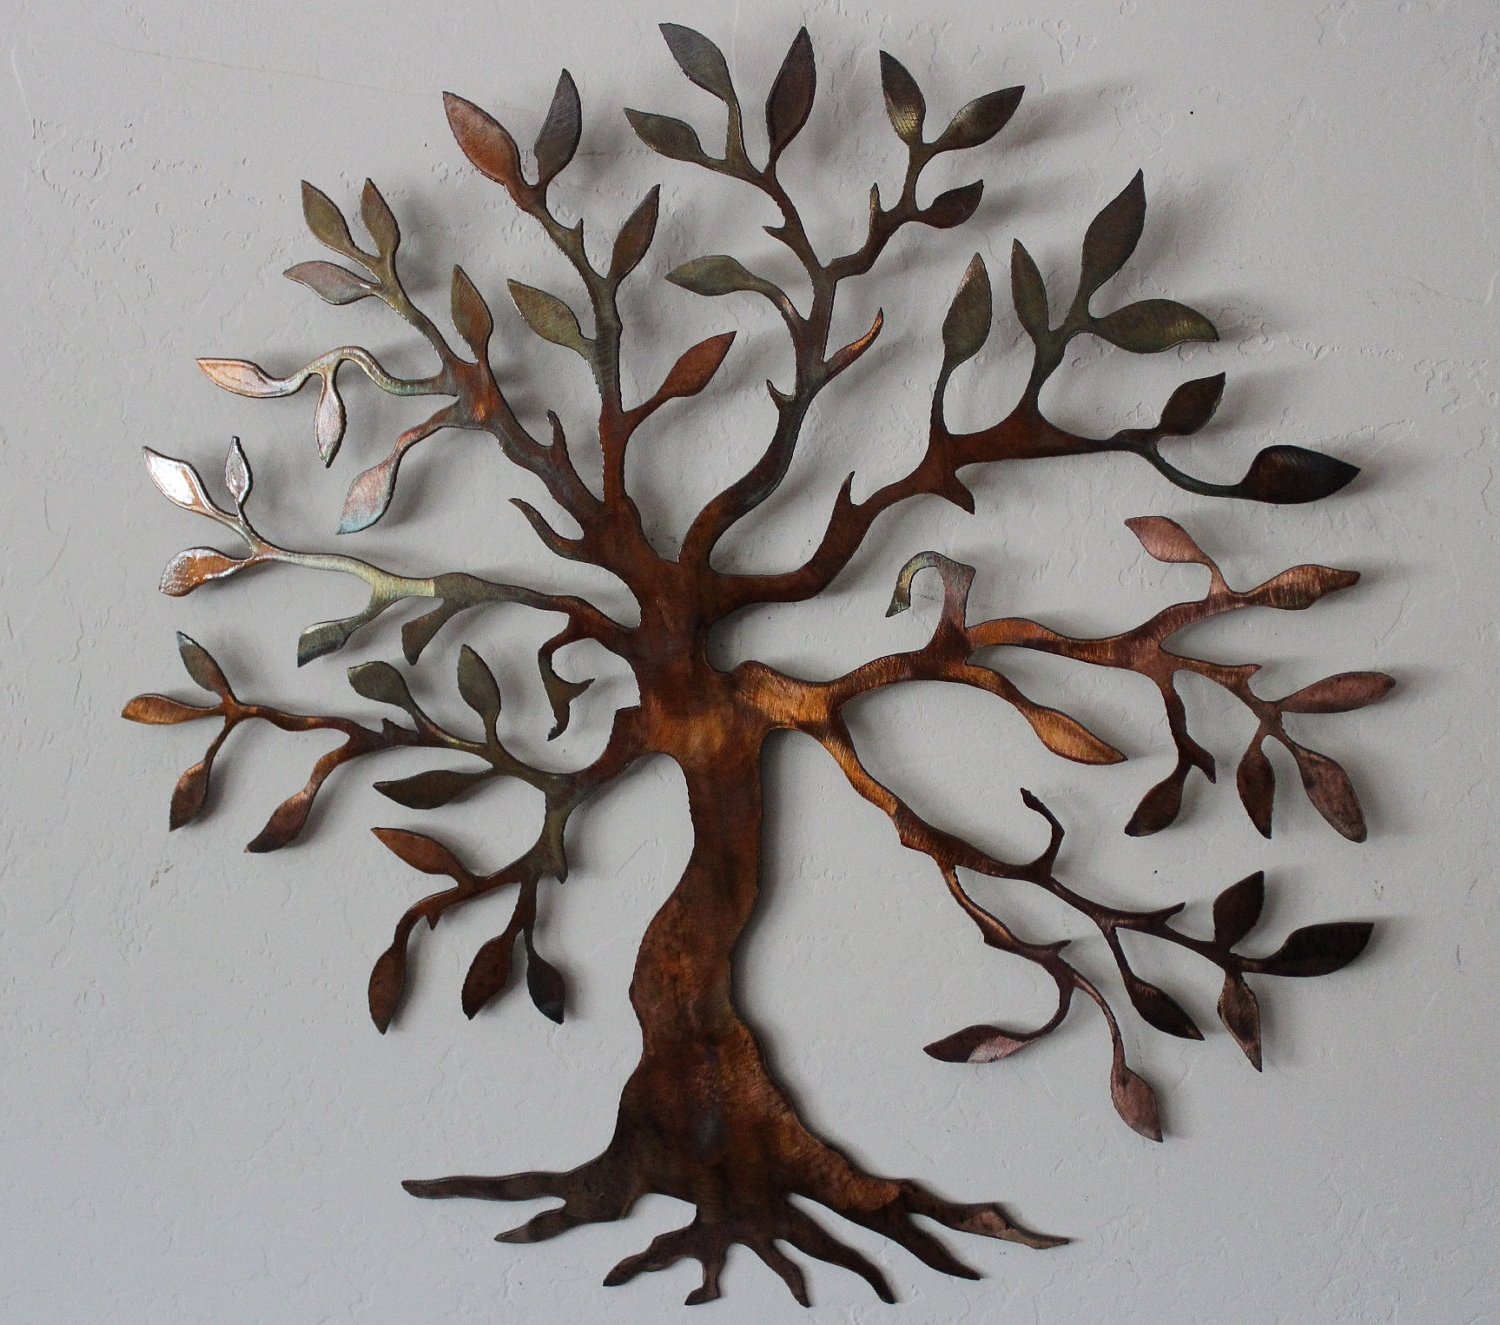 Marvellous Ideas Metal Wall Accents With Olive Tree Of Live Art Intended For Well Known Metal Wall Accents (View 13 of 15)